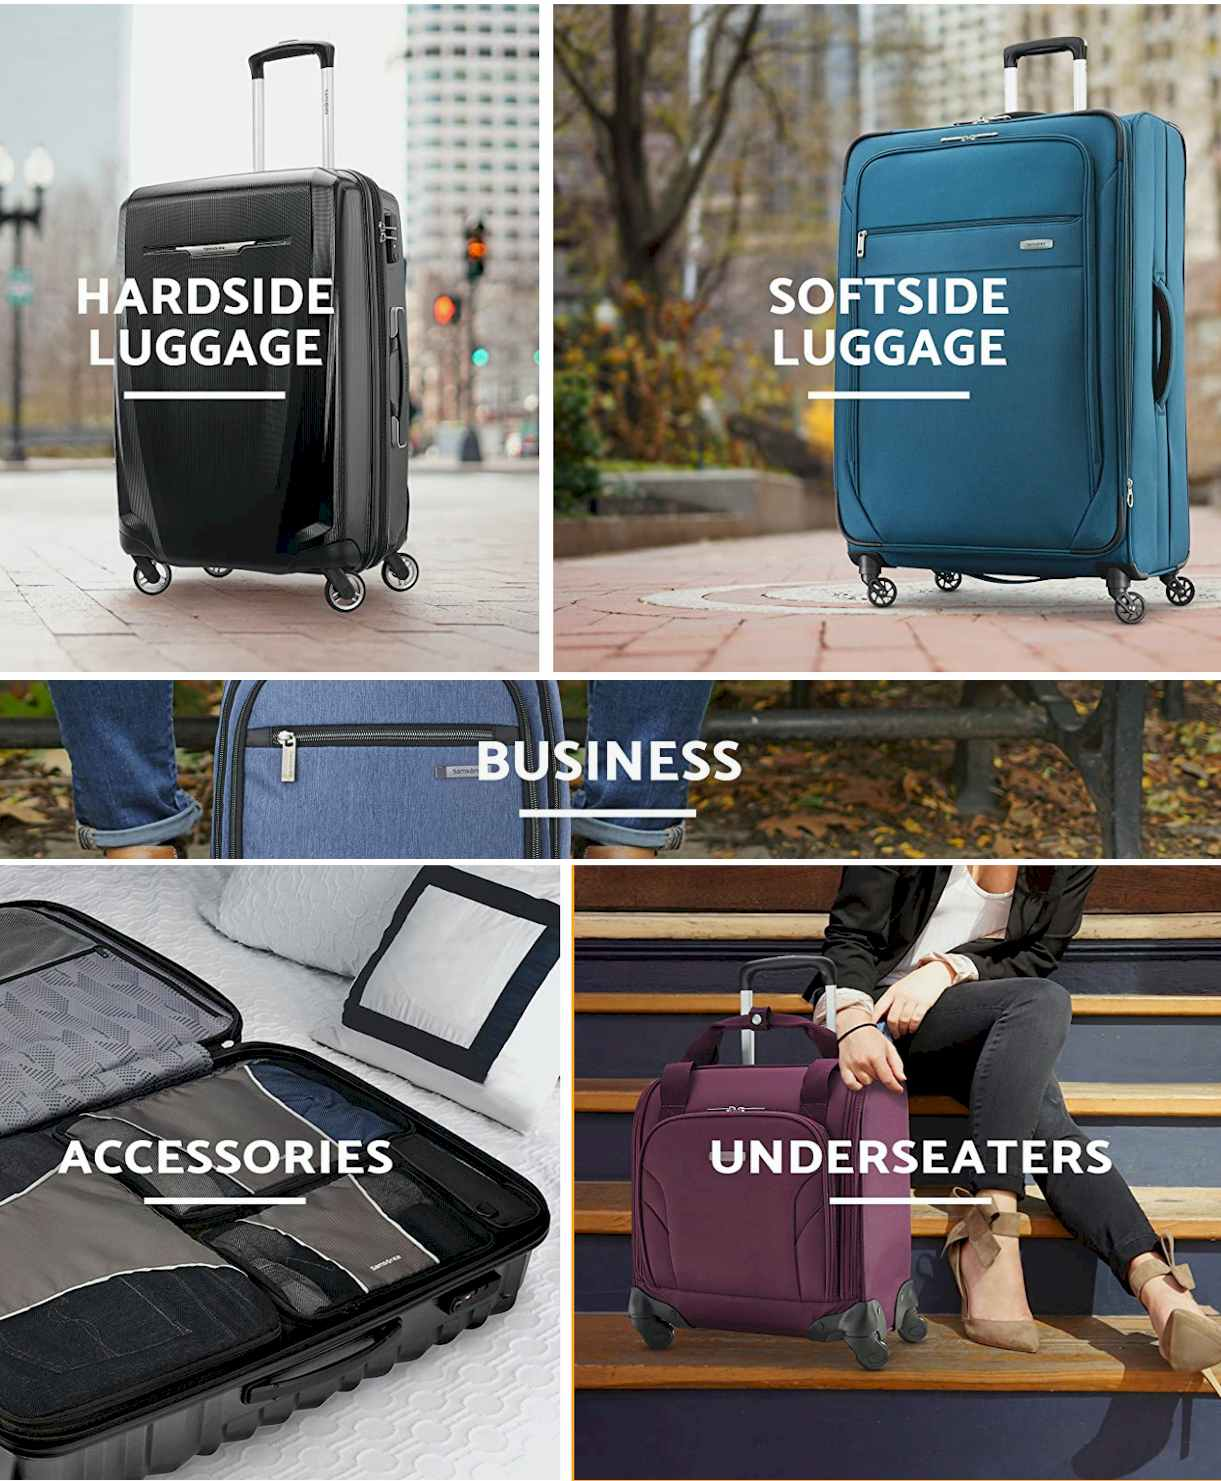 SAMSONITE Store on amazon products 2021 -Luggage & Suitcases #Travel Gear - #Luggage_Sets - #Suitcases - #Carry_On Luggage - #Luggage - #Travel Duffel #Bags #Samsonite